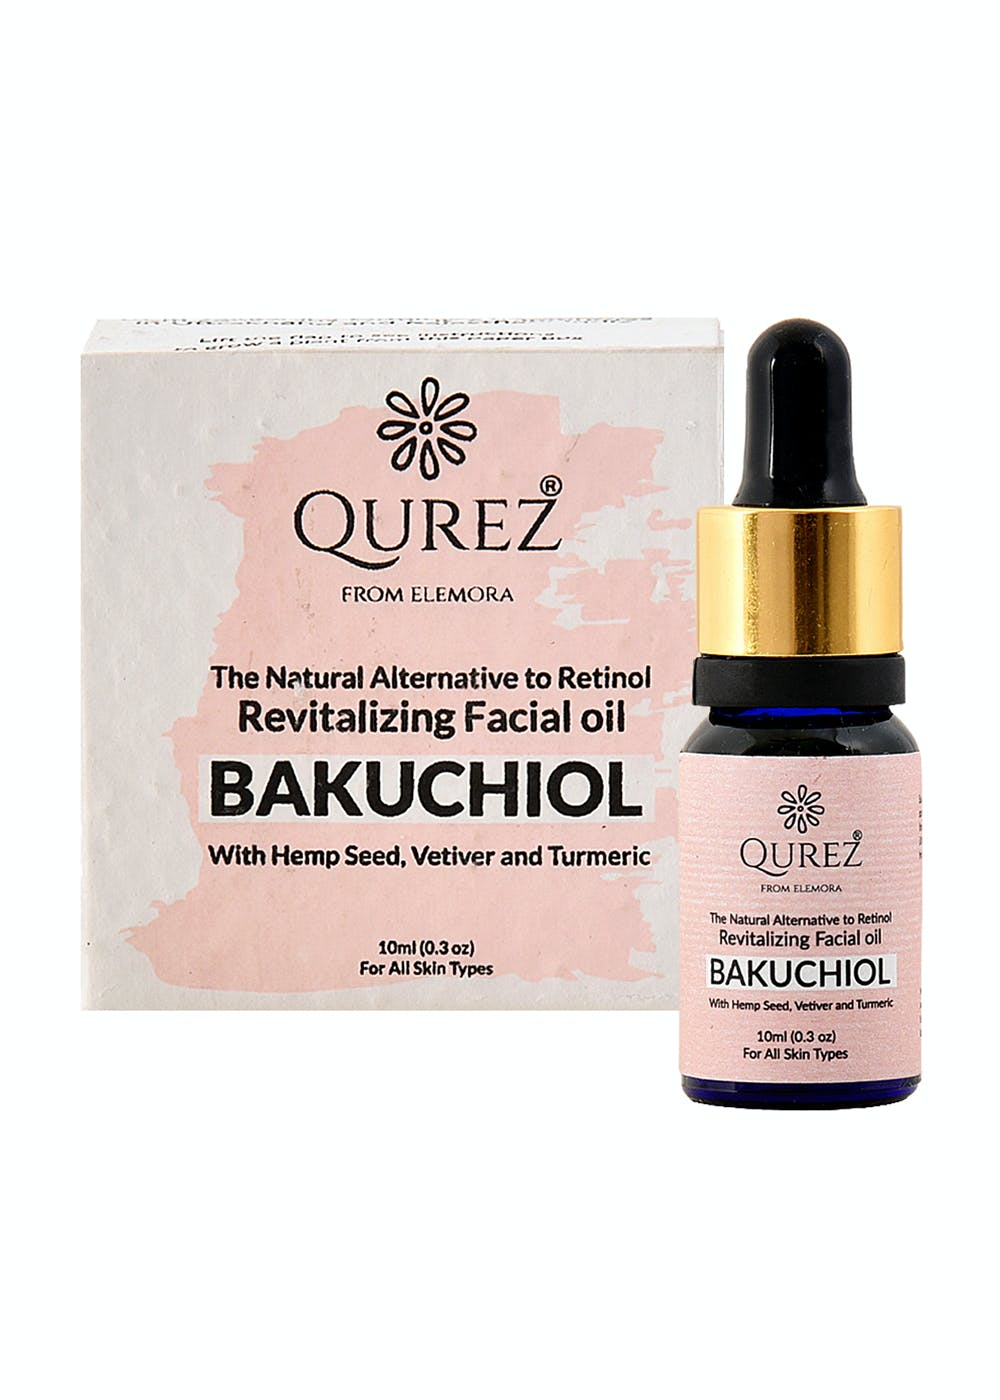 Bakuchiol - Revitalizing Facial oil with Hemp Seed, Vetiver and Turmeric (10ml)